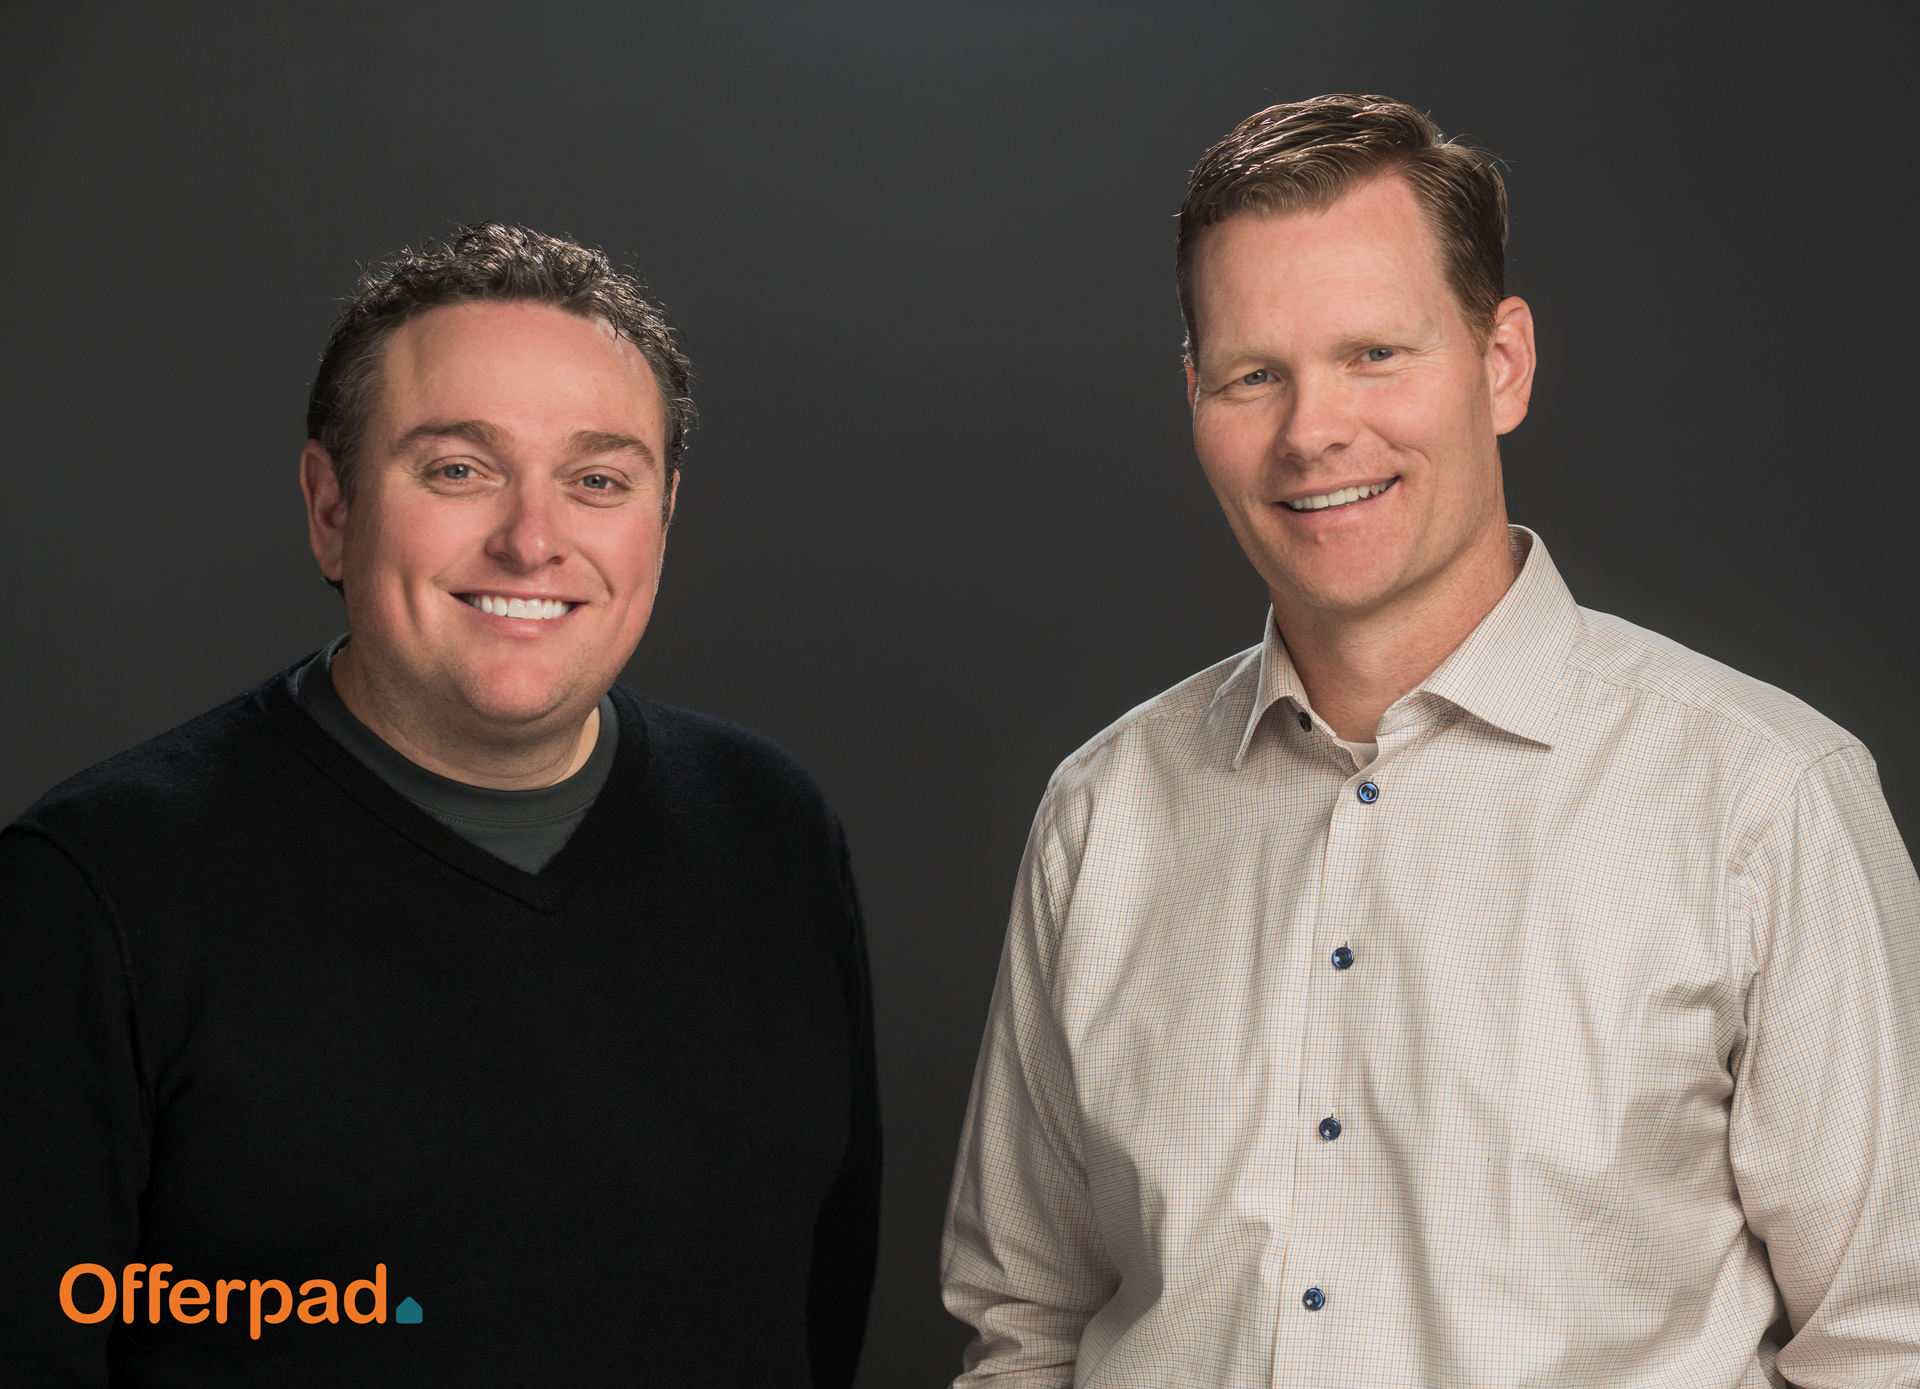 Image of Co-founders Brian Bair and Jerry Coleman